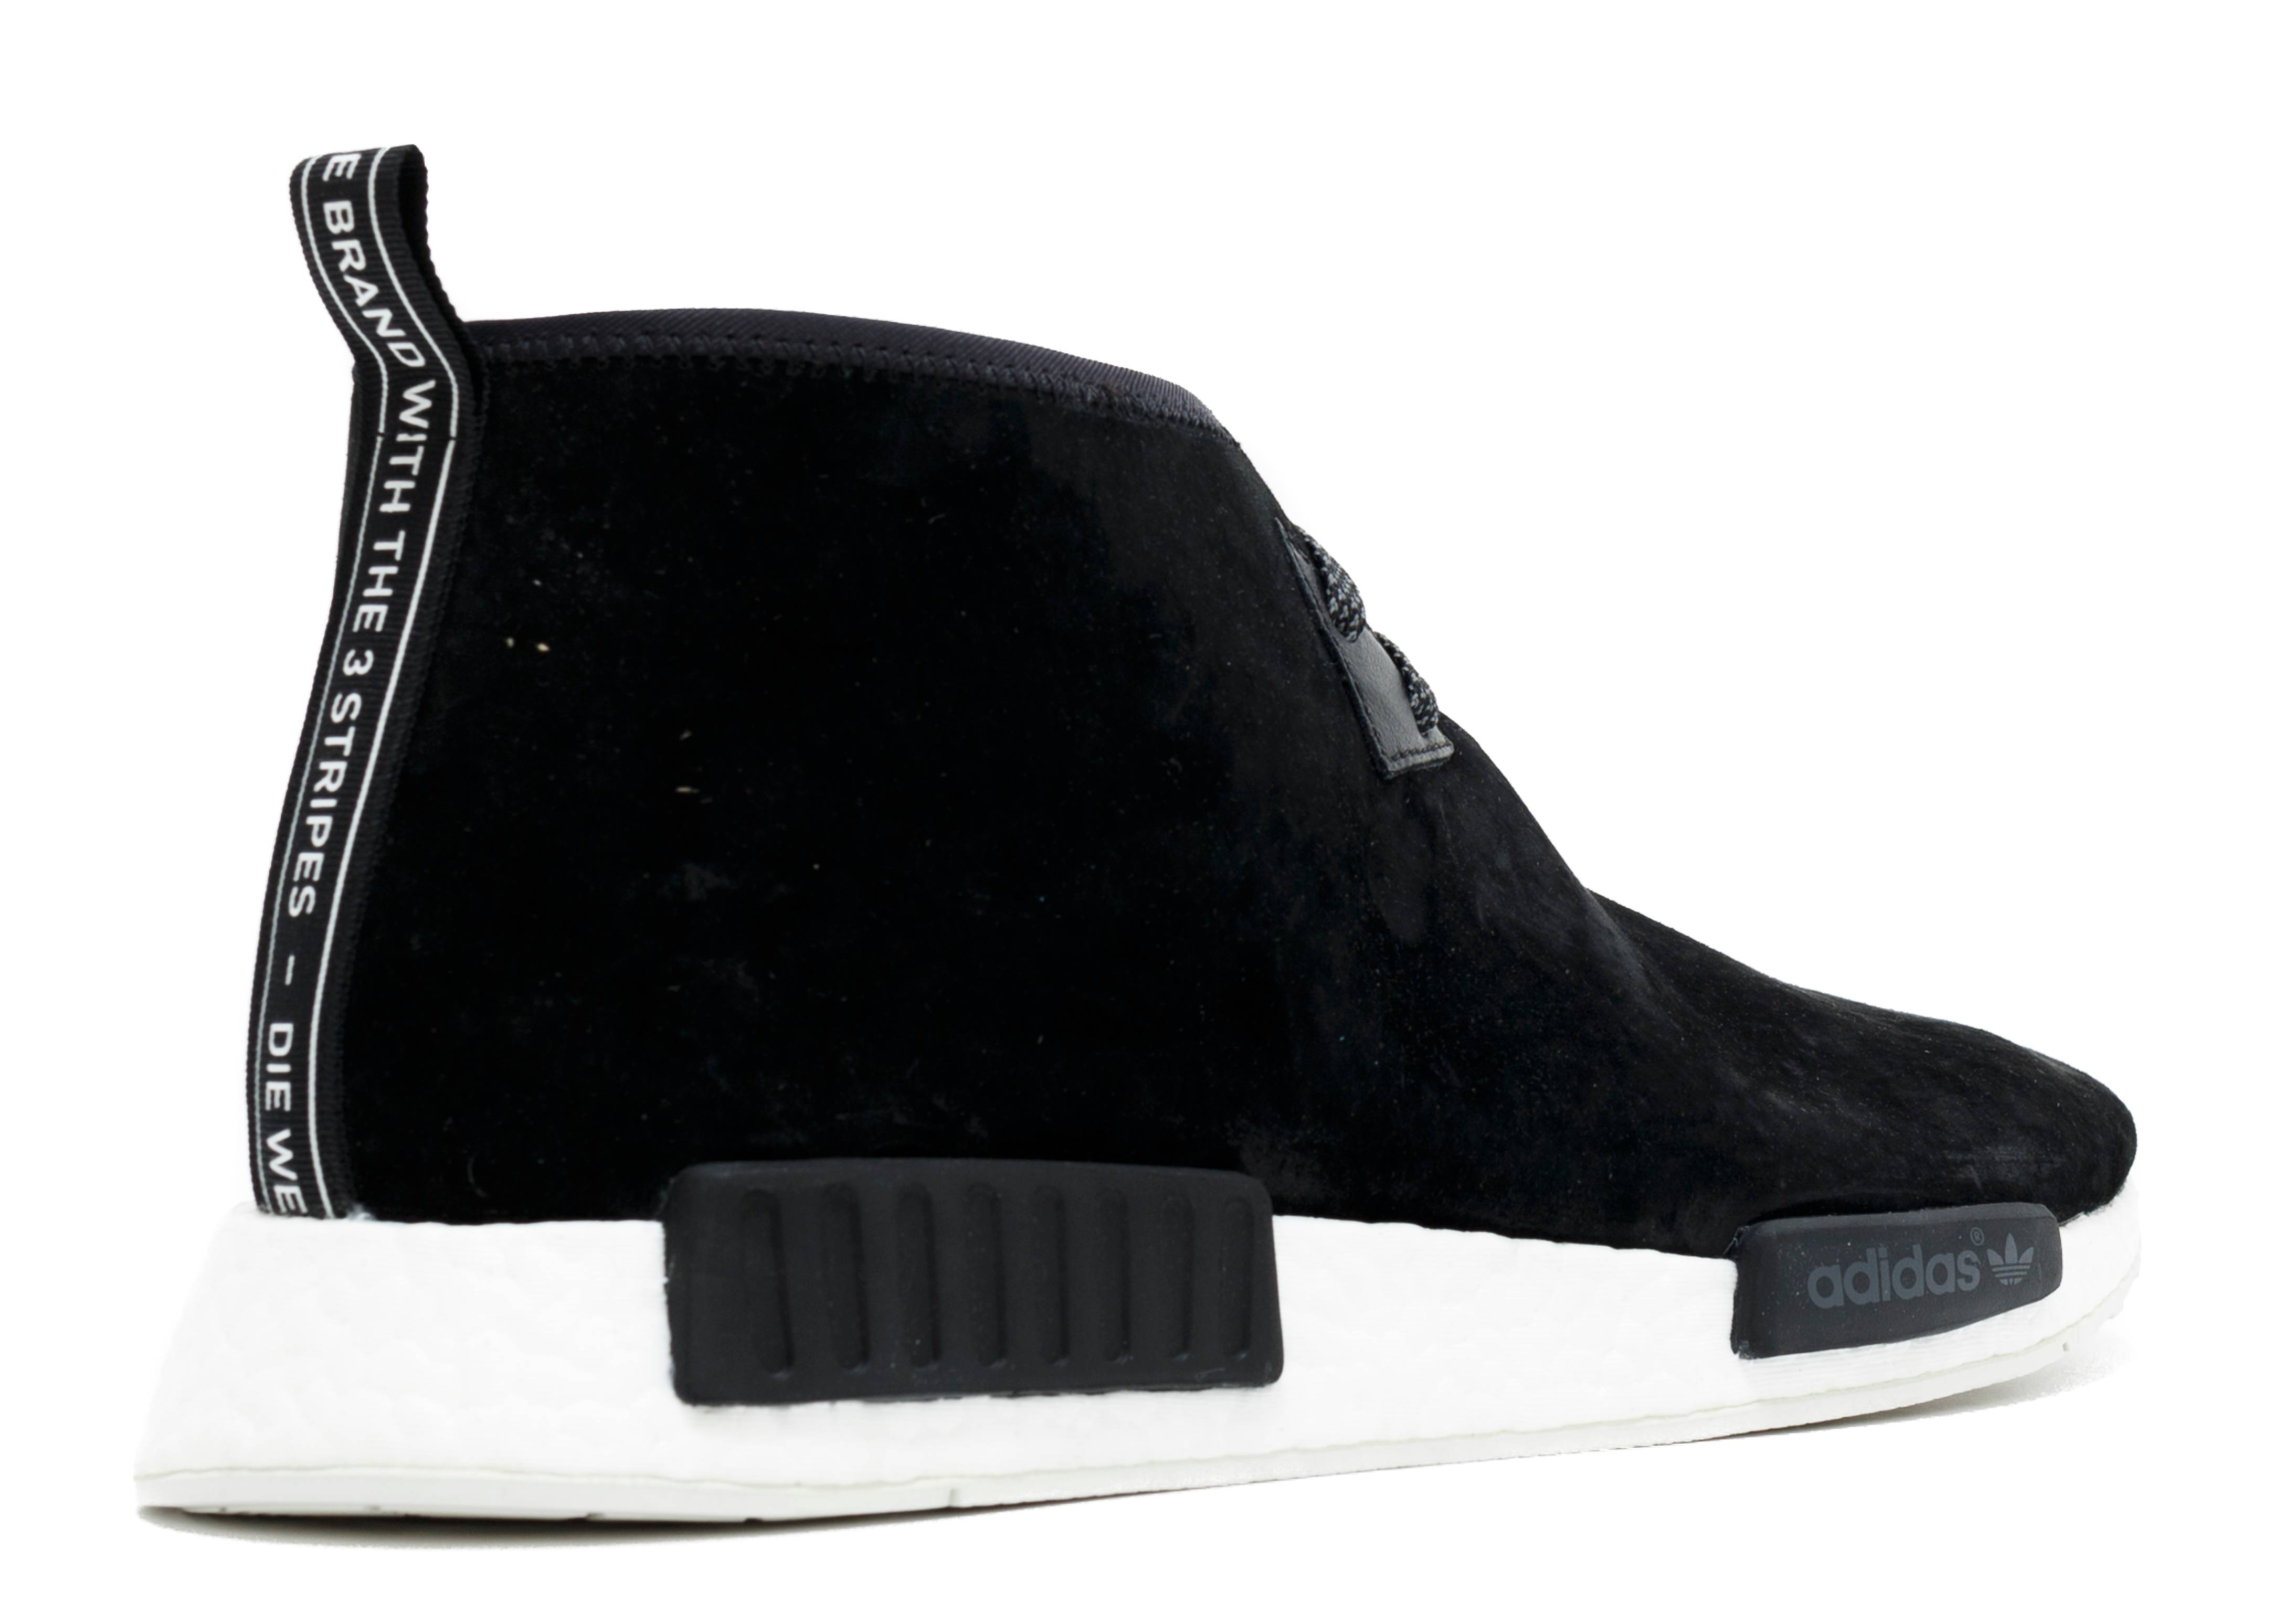 adidas nmd c1 mens Black